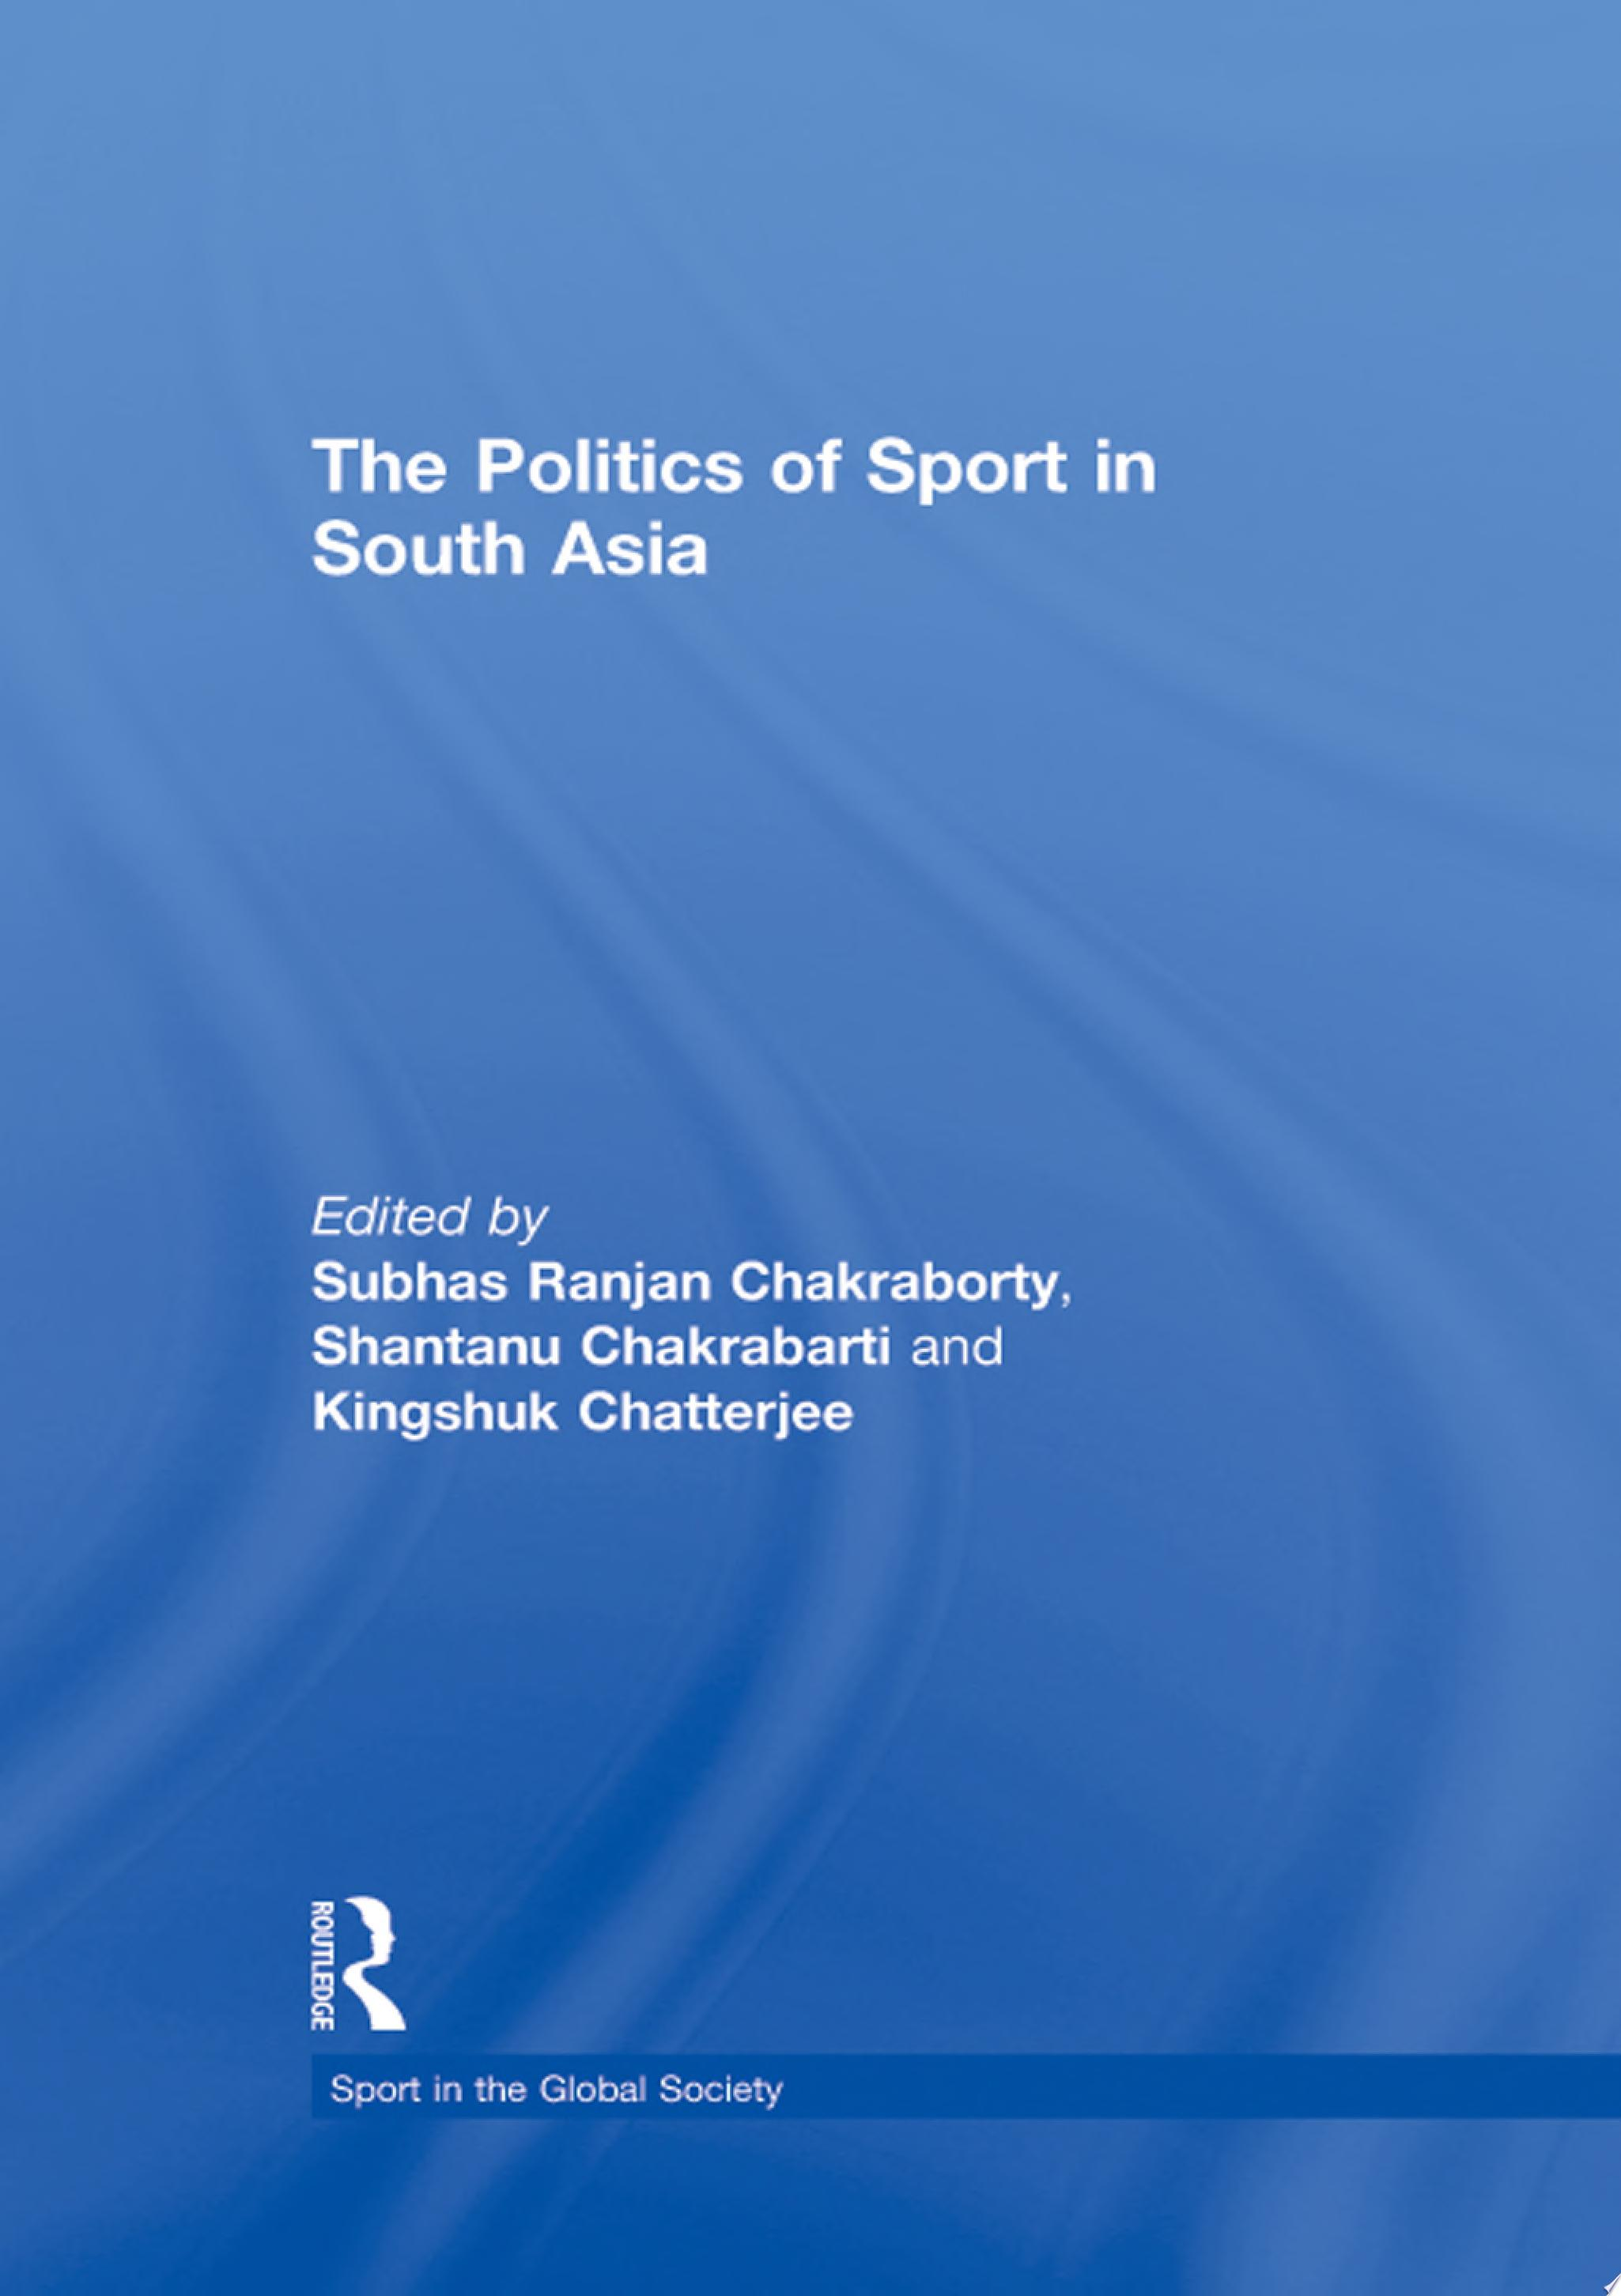 The Politics of Sport in South Asia